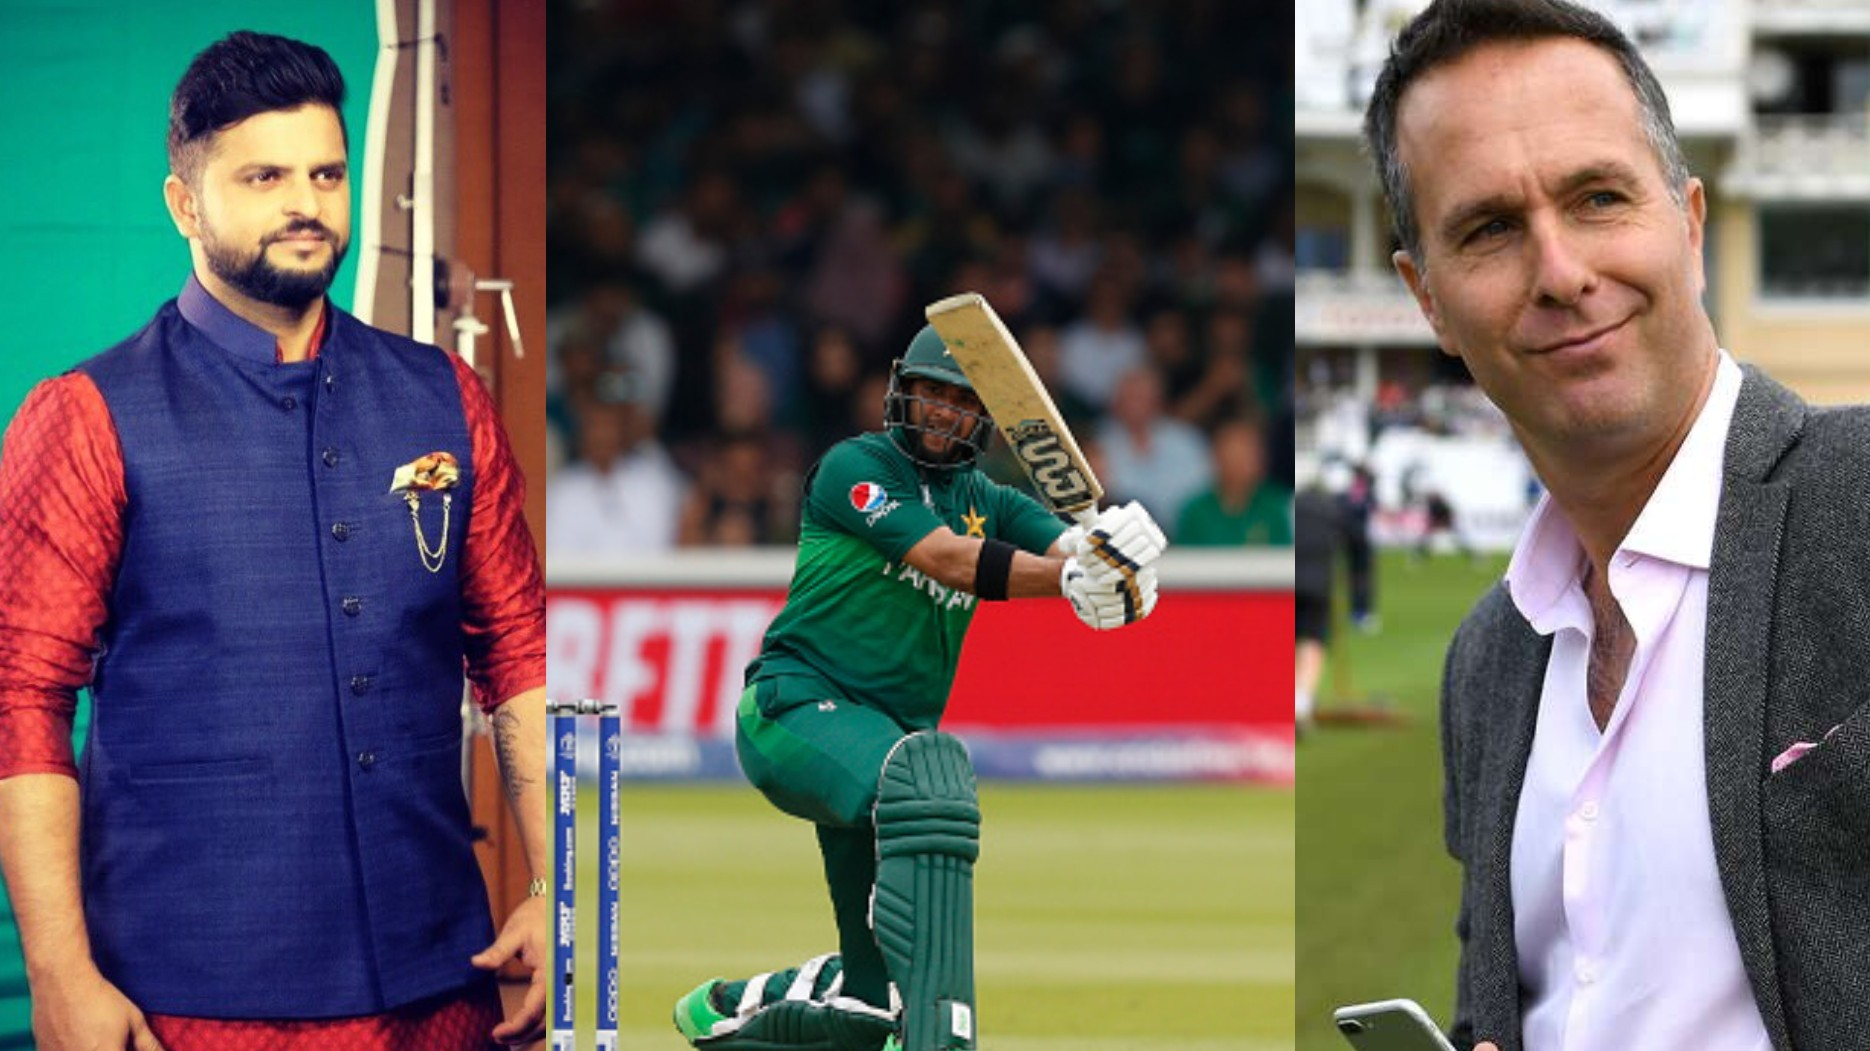 CWC 2019: Cricket fraternity lauds Imad Wasim's 49* as Pakistan wins a thriller by 3 wickets